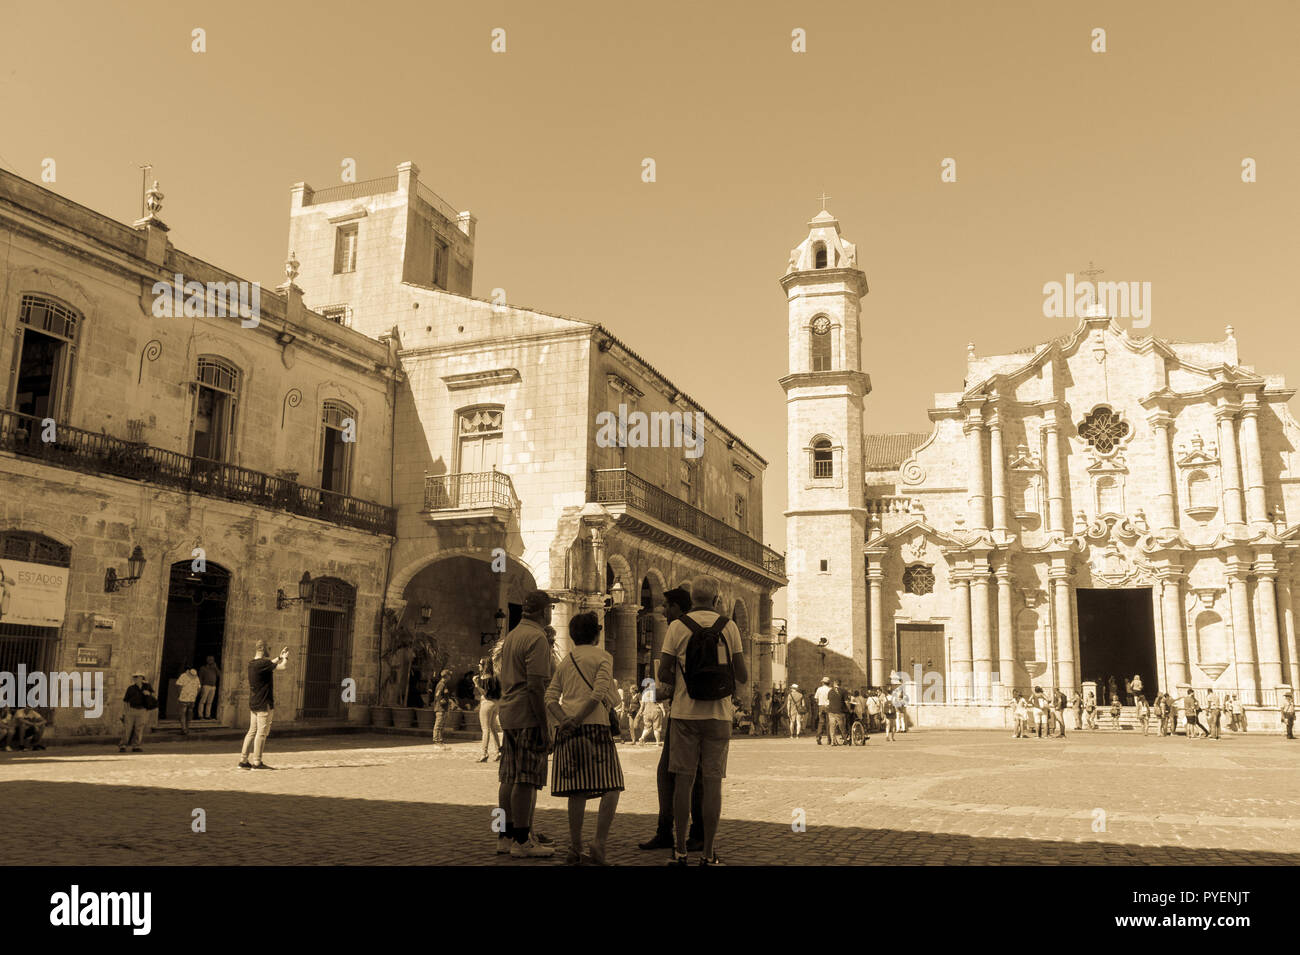 HAVANA, CUBA - JANUARY 16, 2017: Panoramic of Plaza de la Cathedral in Old Havana with the baroque architecture of San Cristobal Cathedral. Cobbleston Stock Photo